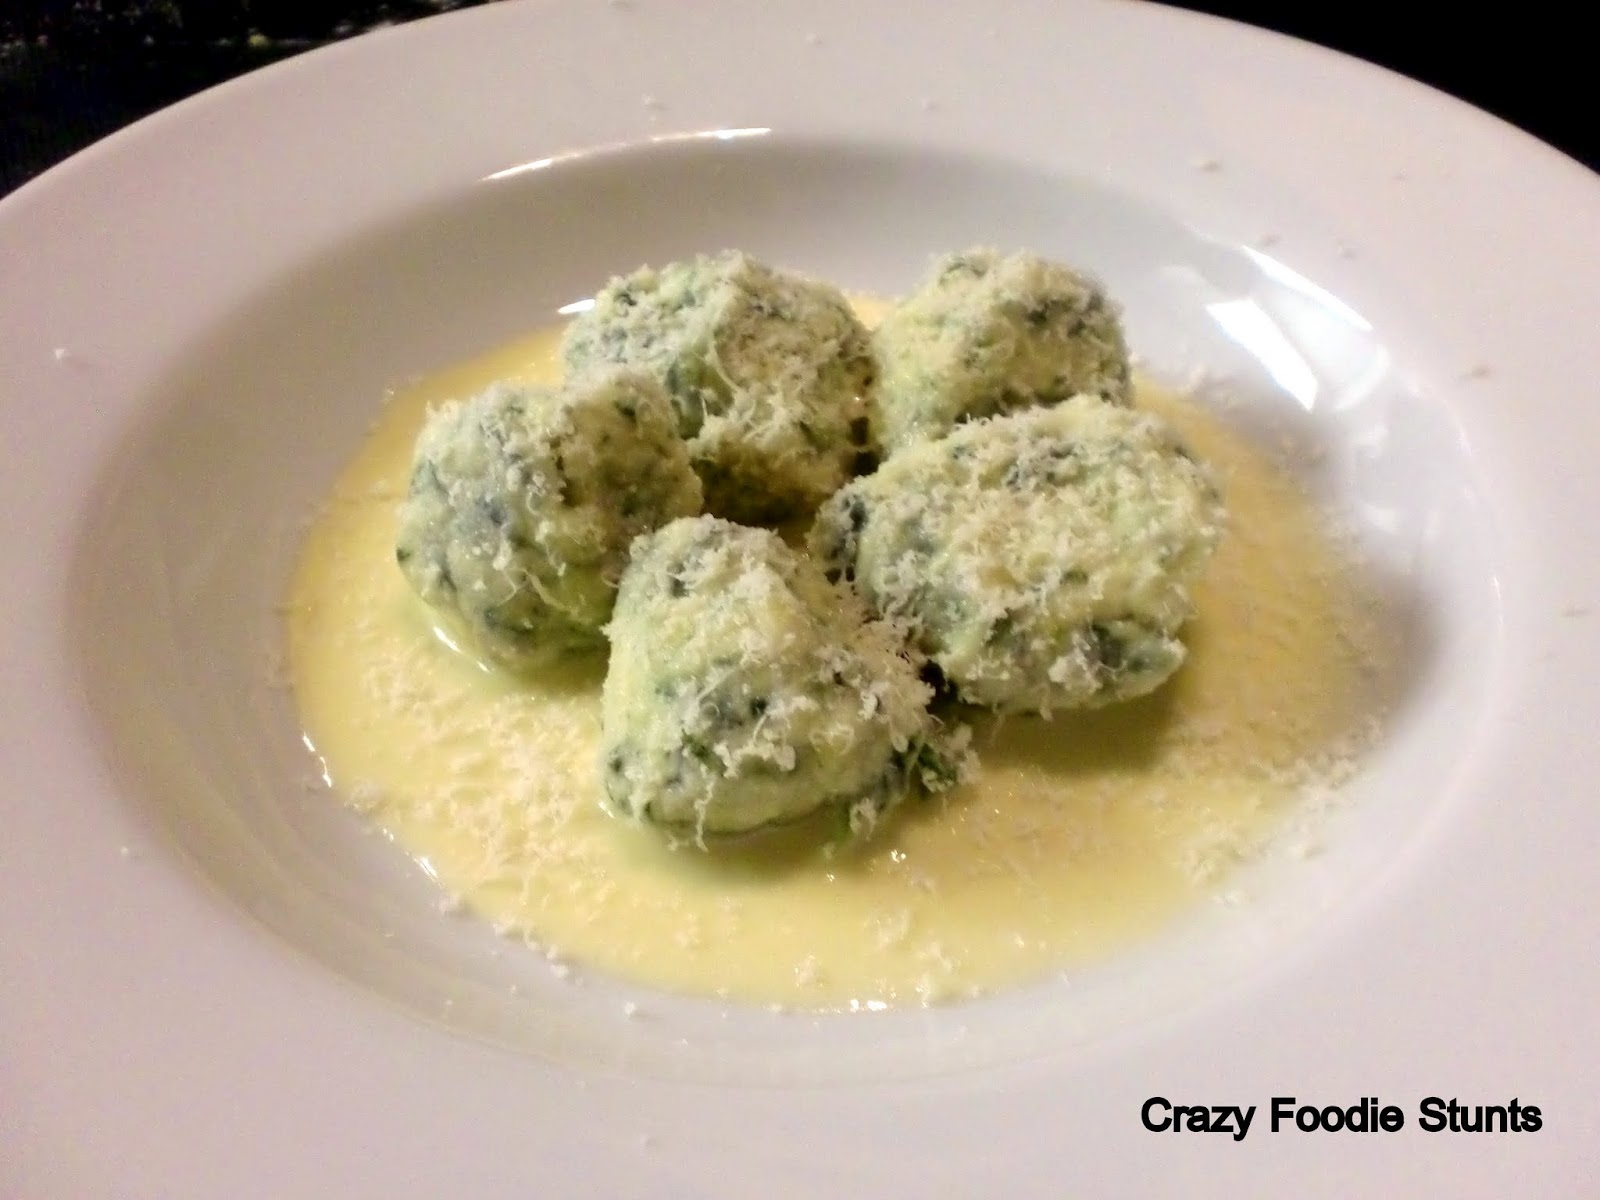 Crazy Foodie Stunts: Spinach and Ricotta Gnocchi with Fontina Fonduta